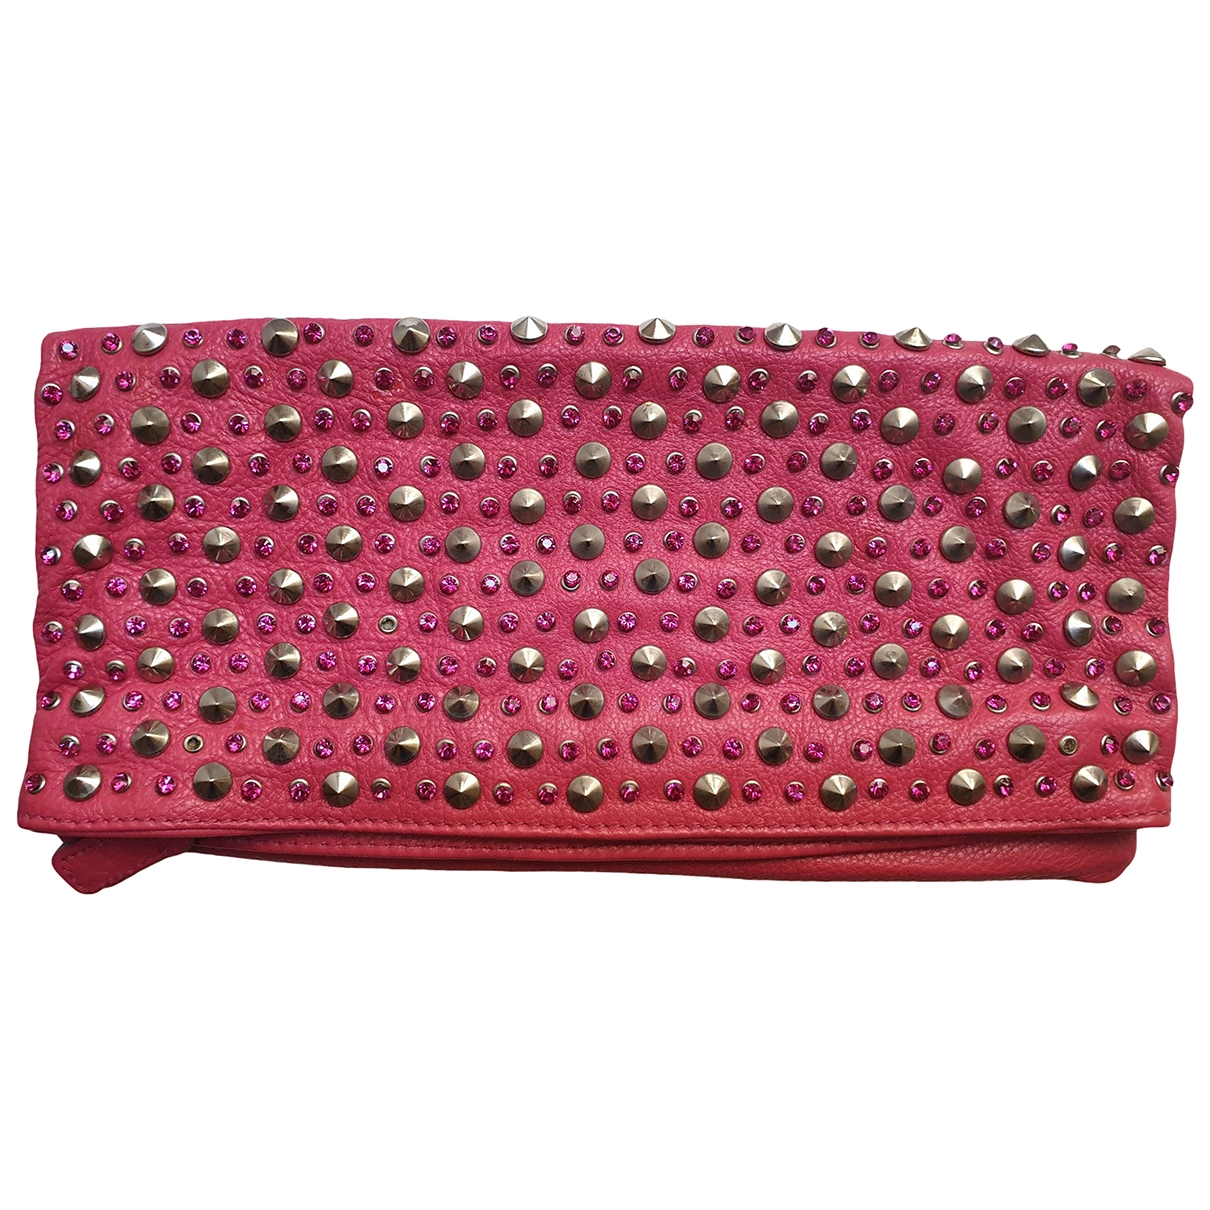 Non Signé / Unsigned \N Multicolour Leather Clutch bag for Women \N